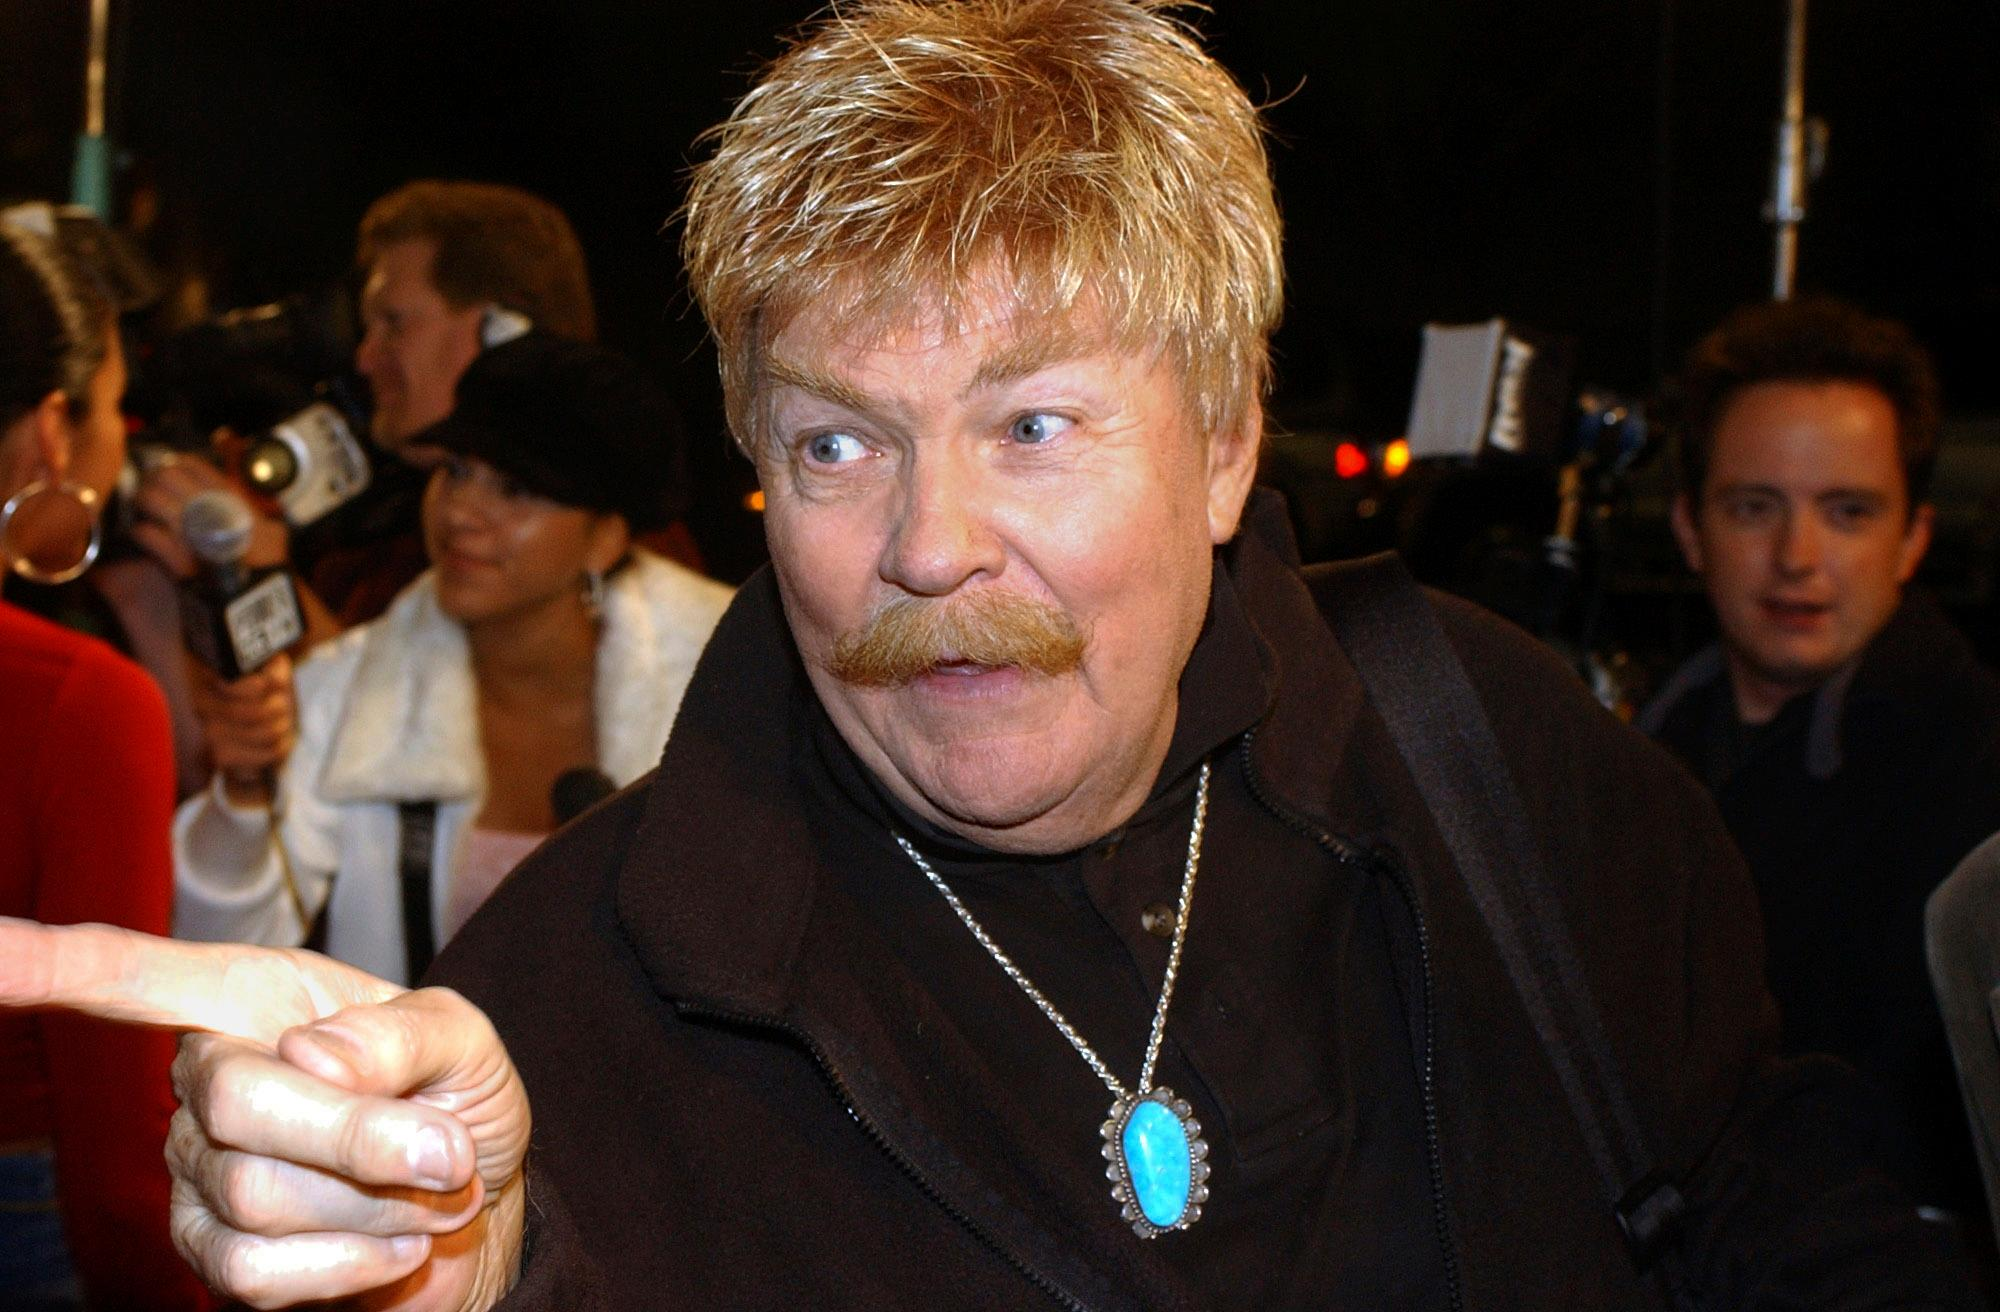 FILE - In this Monday, Oct. 21, 2002, file photo, comedian Rip Taylor talks with reporters before a film premiere, in the Hollywood section of Los Angeles. Taylor, the mustached comedian with a fondness for confetti-throwing who became a television game show mainstay in the 1970s, died Sunday, Oct. 6, 2019. He was 84. (AP Photo/Rene Macura, File)